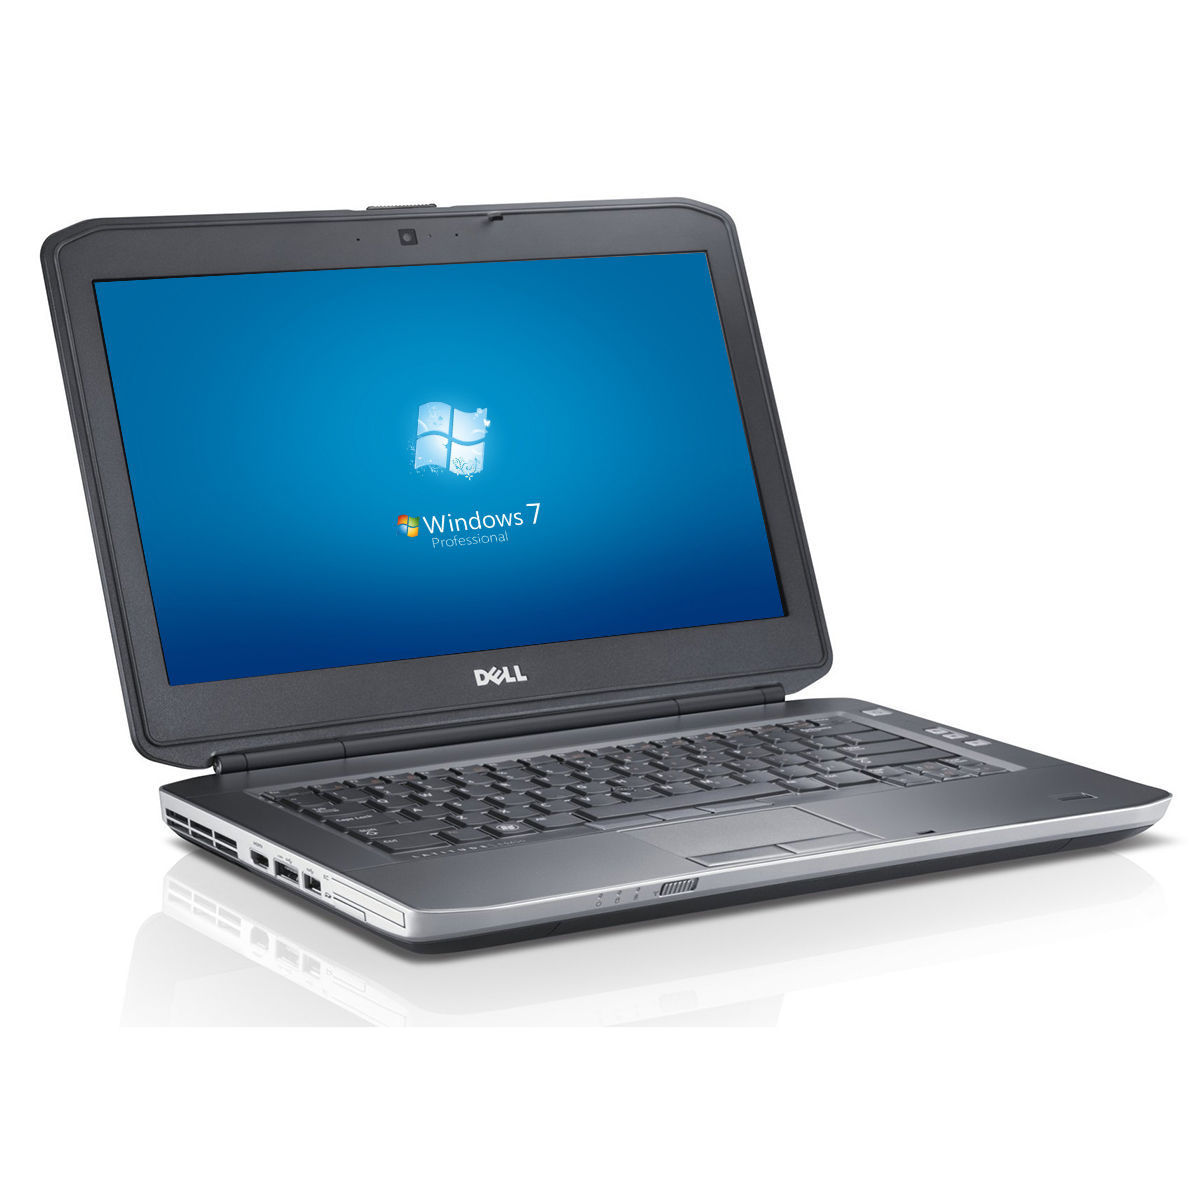 "Refurbished Dell Latitude E5430 14"" LED Intel Core i5-3210M 2.5GHz 4GB 320GB Laptop Notebook by Dell"